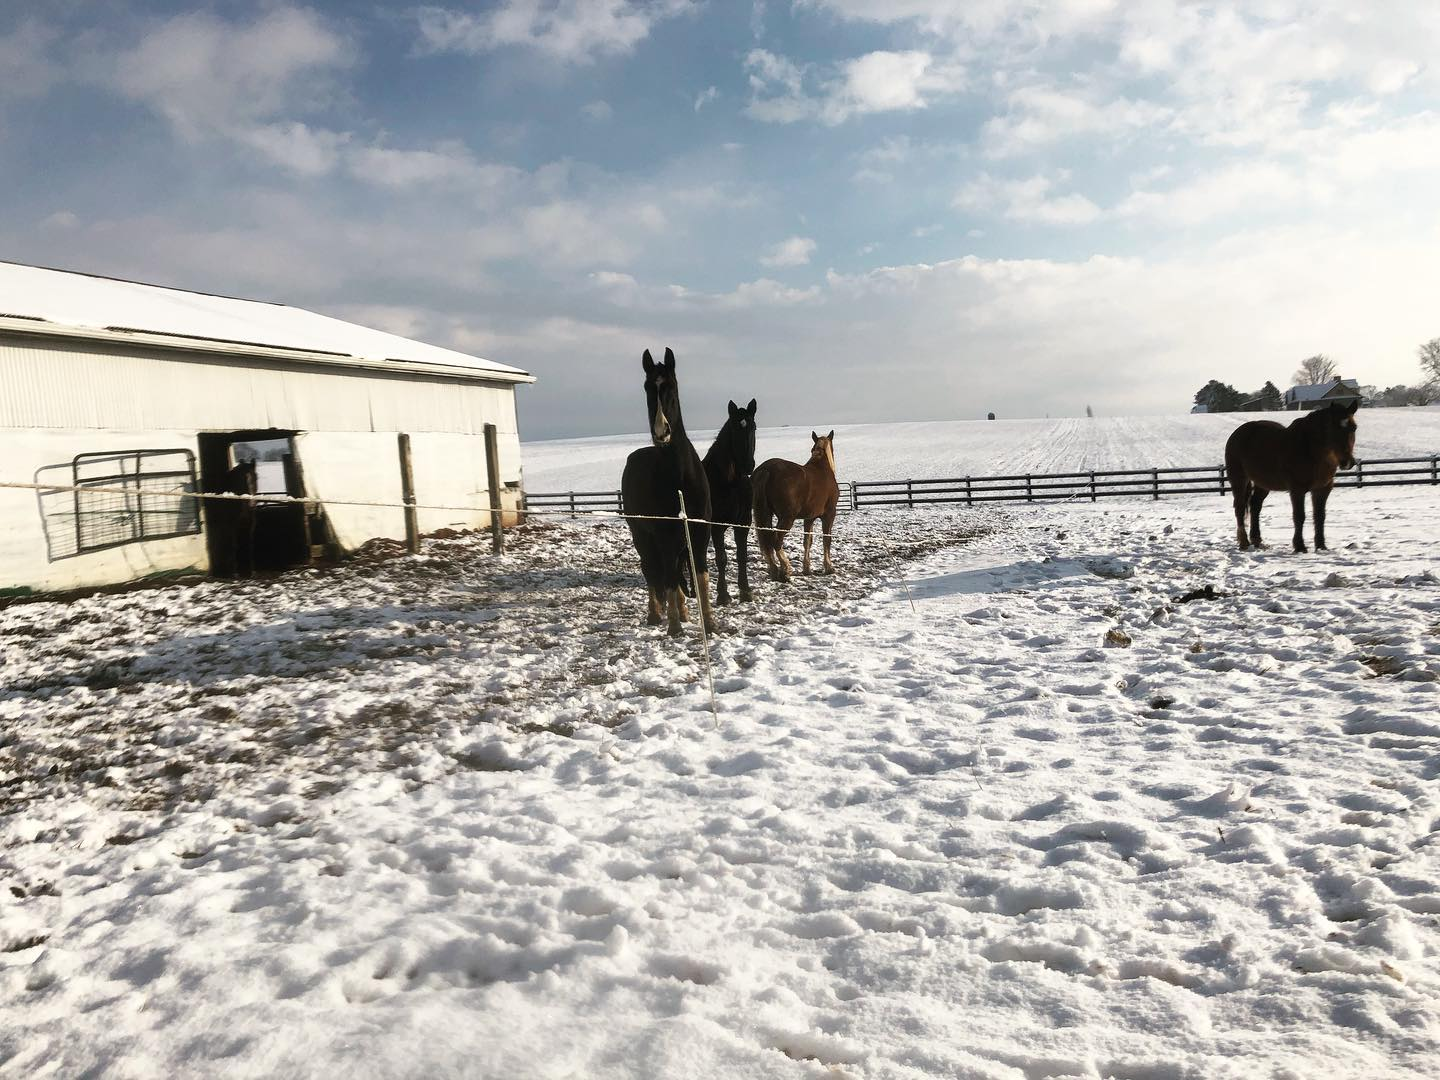 Snow Day for the Horses